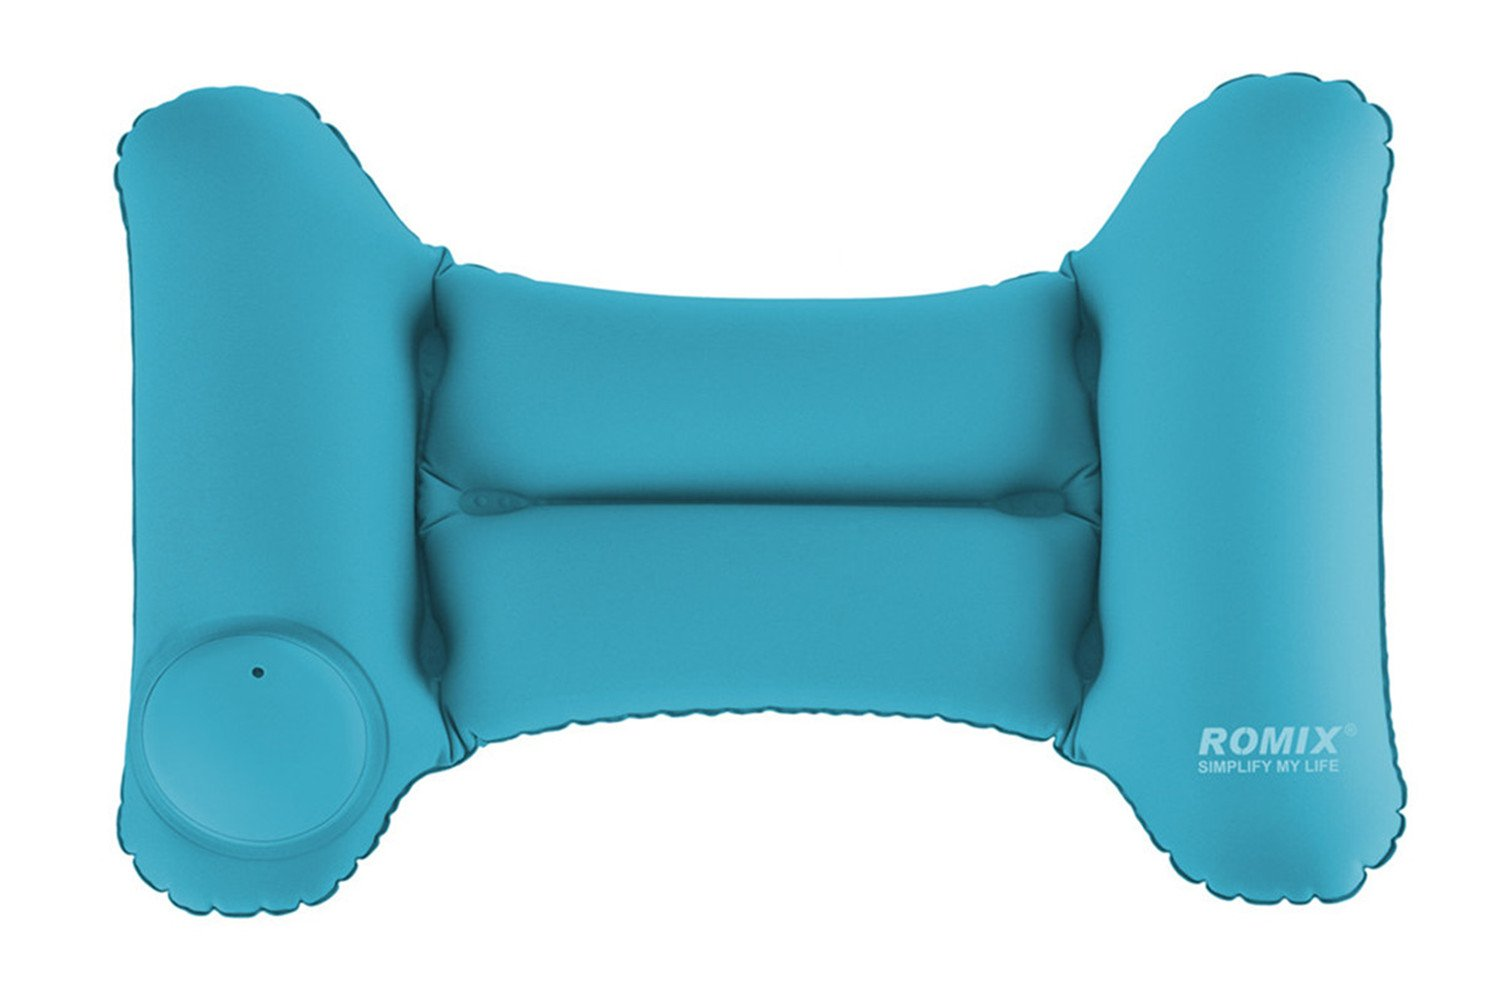 Jieyao Inflatable Travel Pillow for Airplanes Portable Lower Back Support Pillow with a Built-in HAND PUMP,Foldable and Washable.(blue)